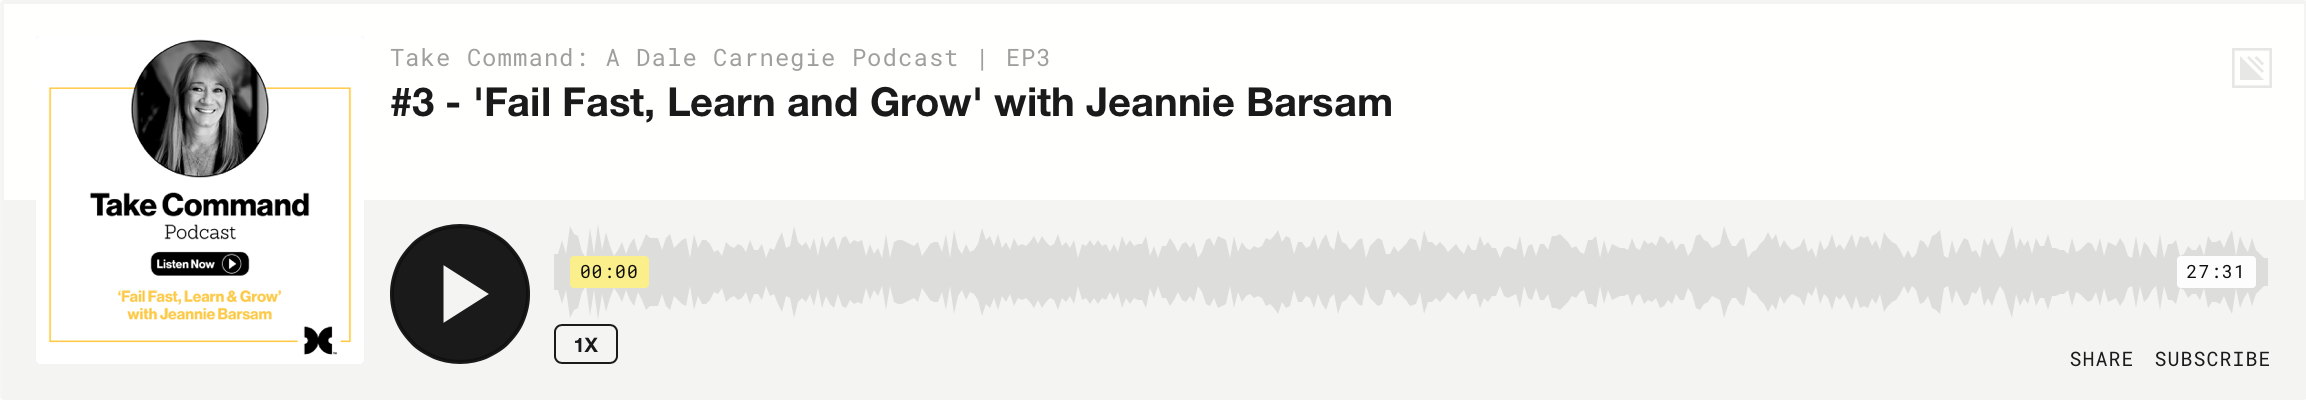 Take Command: Jeannie Barsam - Episode 3